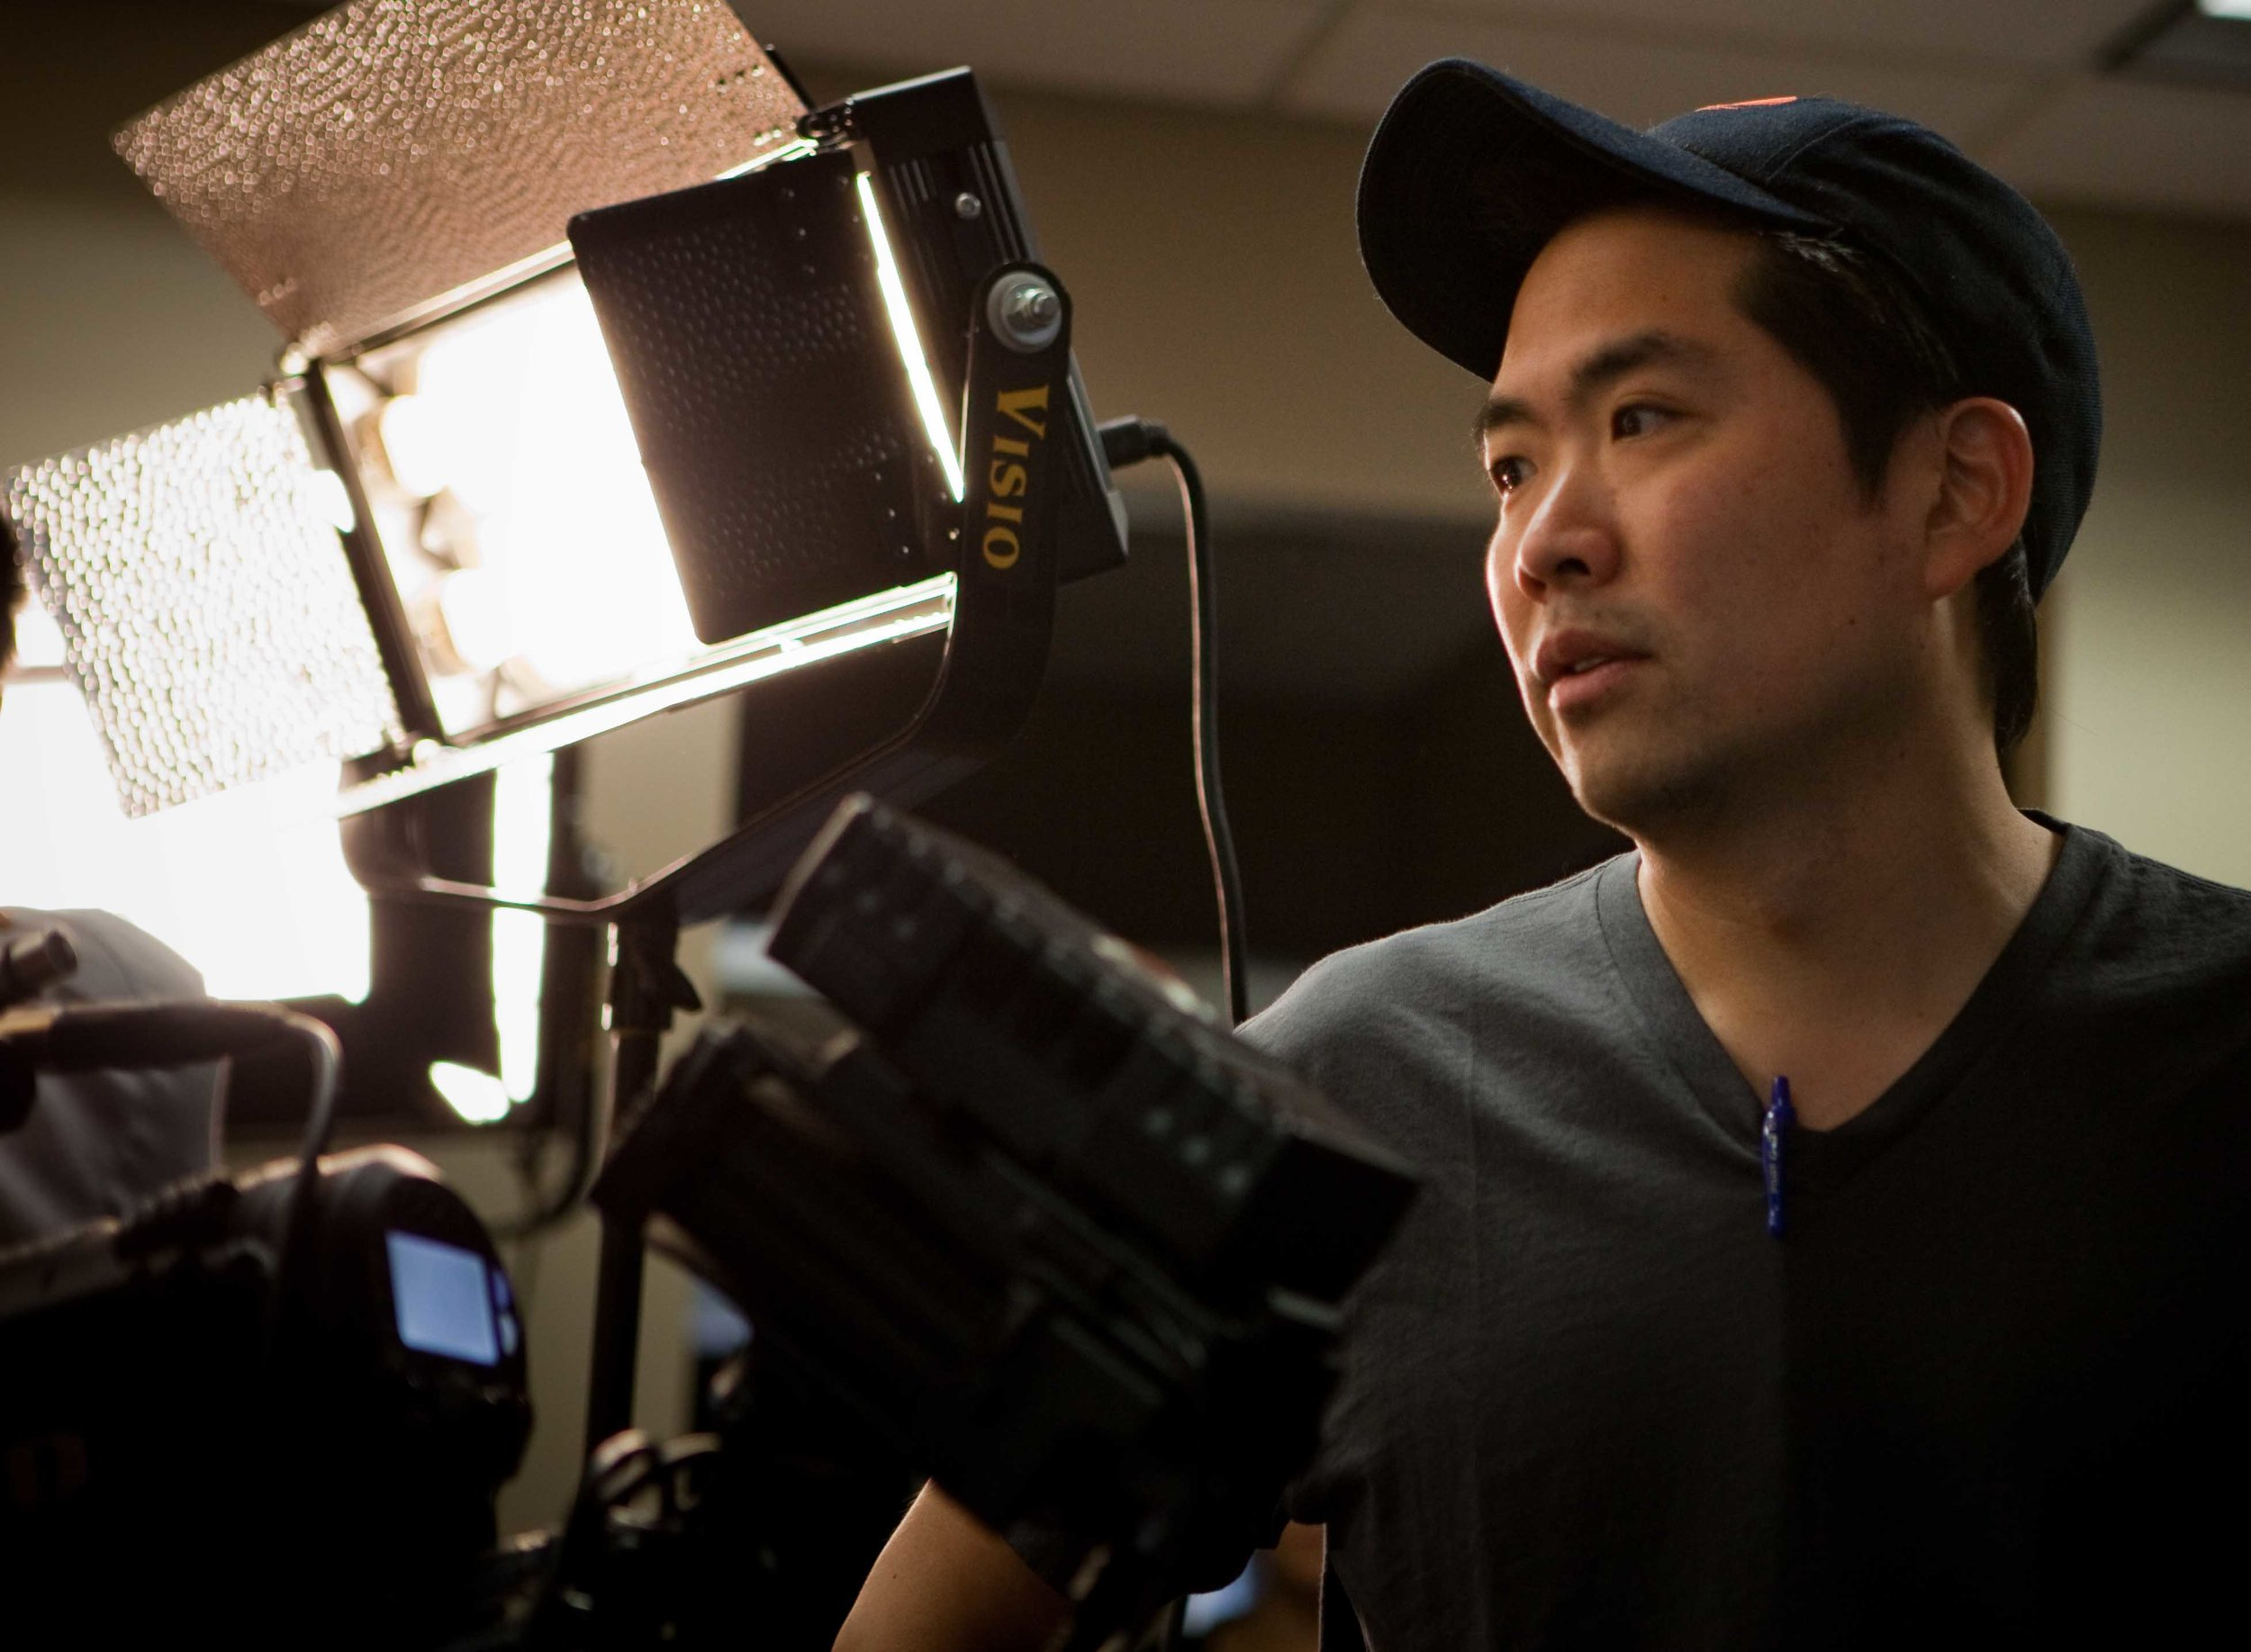 ANDREW PANG - Director, Producer